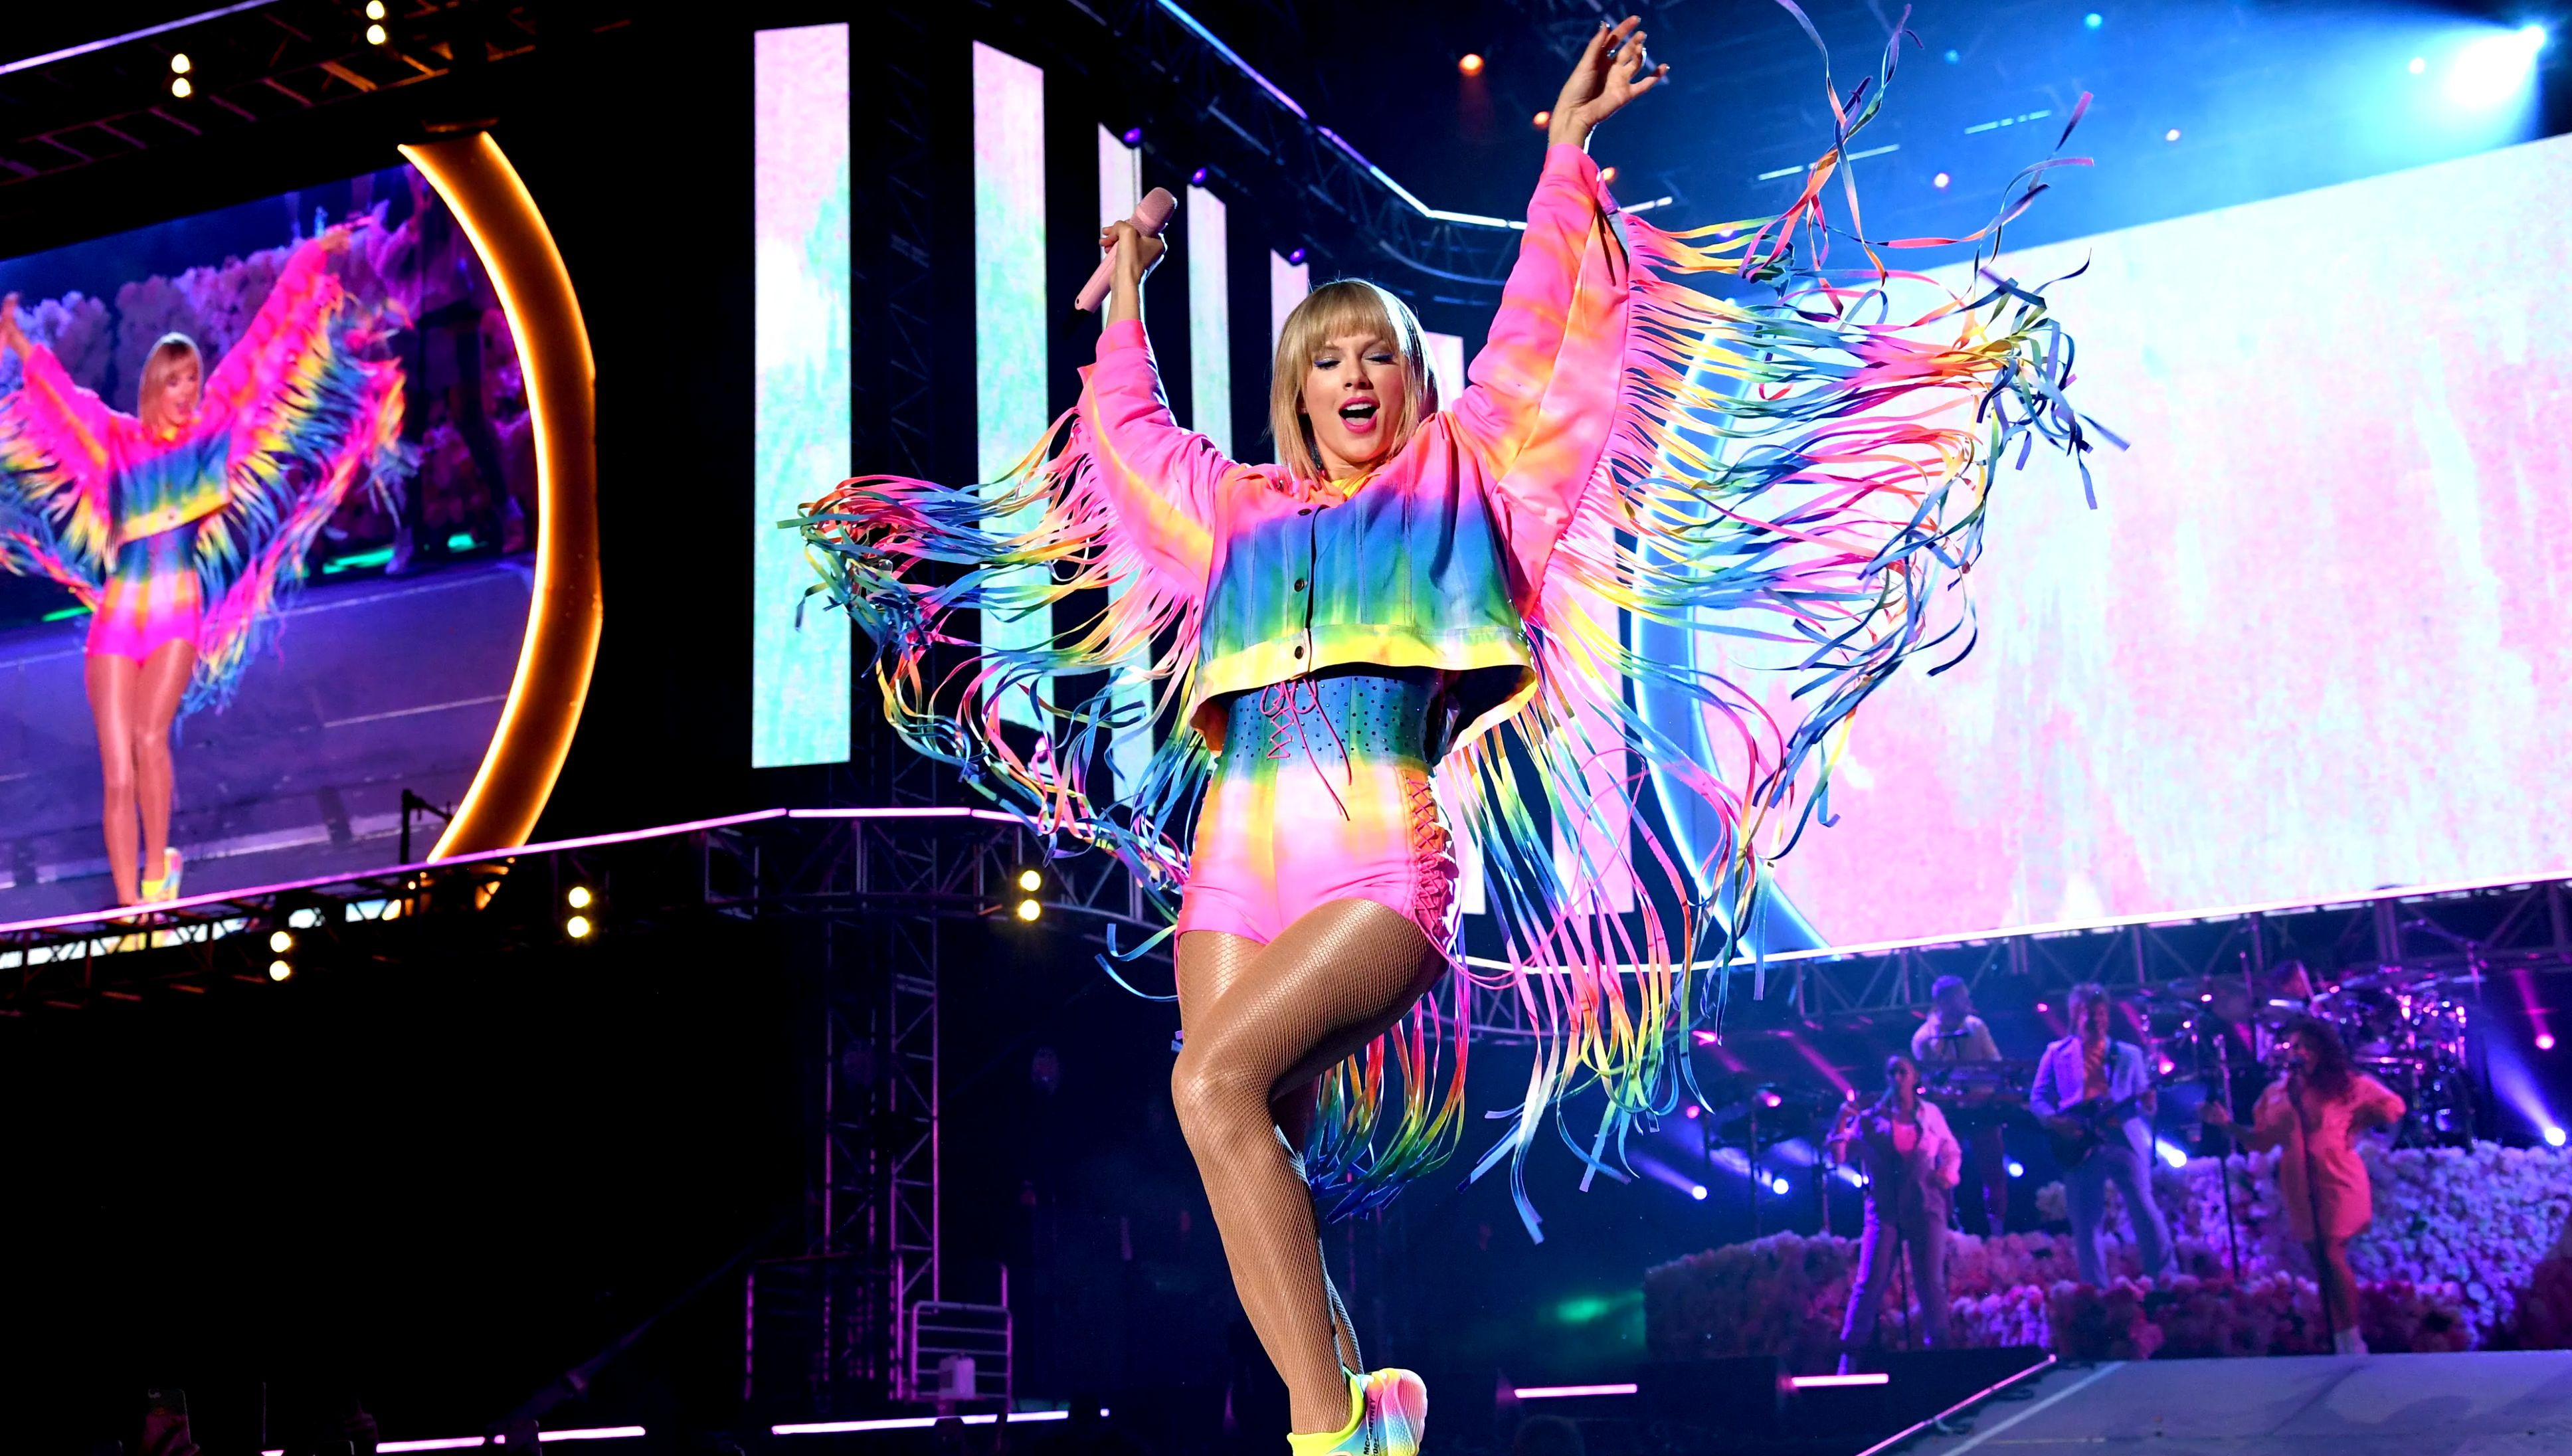 CARSON, CALIFORNIA - JUNE 01: (EDITORIAL USE ONLY. NO COMMERCIAL USE) Taylor Swift performs onstage at 2019 iHeartRadio Wango Tango presented by The JUVÉDERM® Collection of Dermal Fillers at Dignity Health Sports Park on June 01, 2019 in Carson, California.